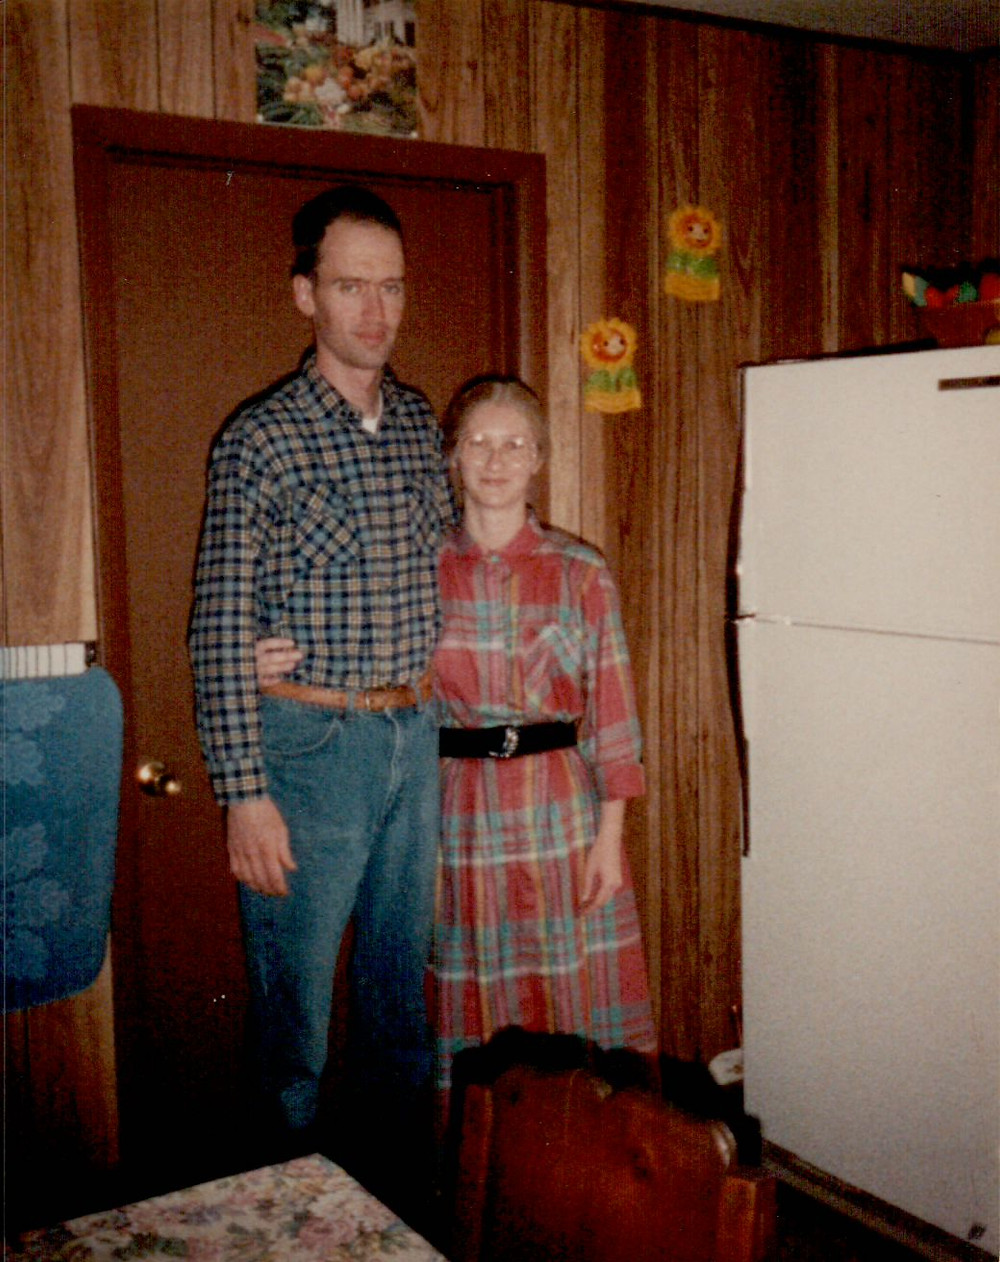 Roger and Linda Corn in the 1990's